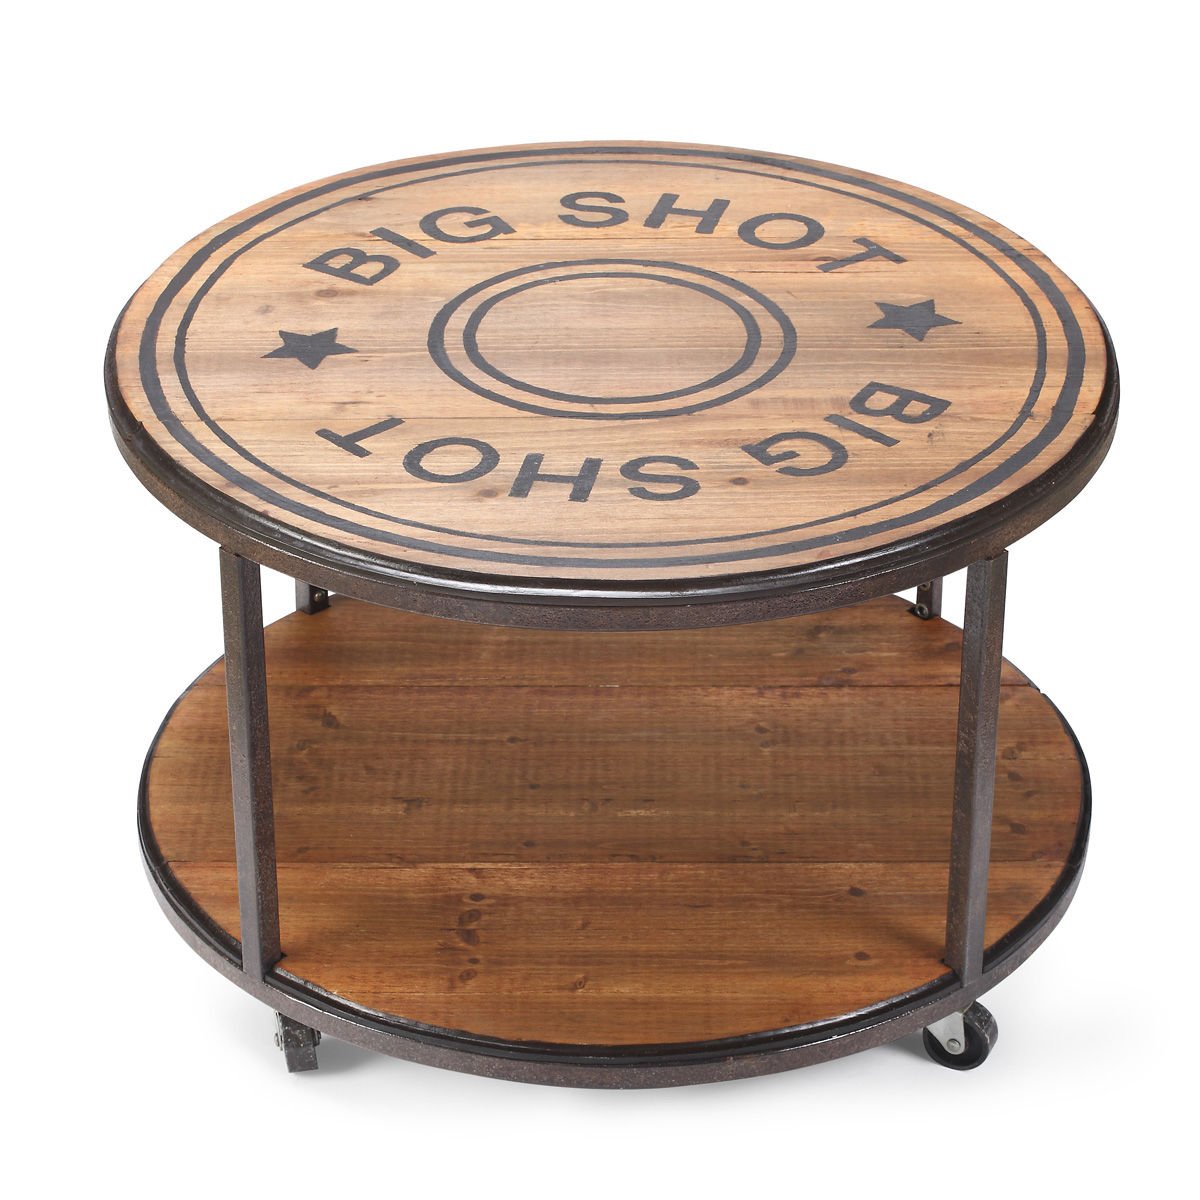 Round Coffee Table On Wheels Dm3005030125 Big Shot Round Coffee Table With Wheels